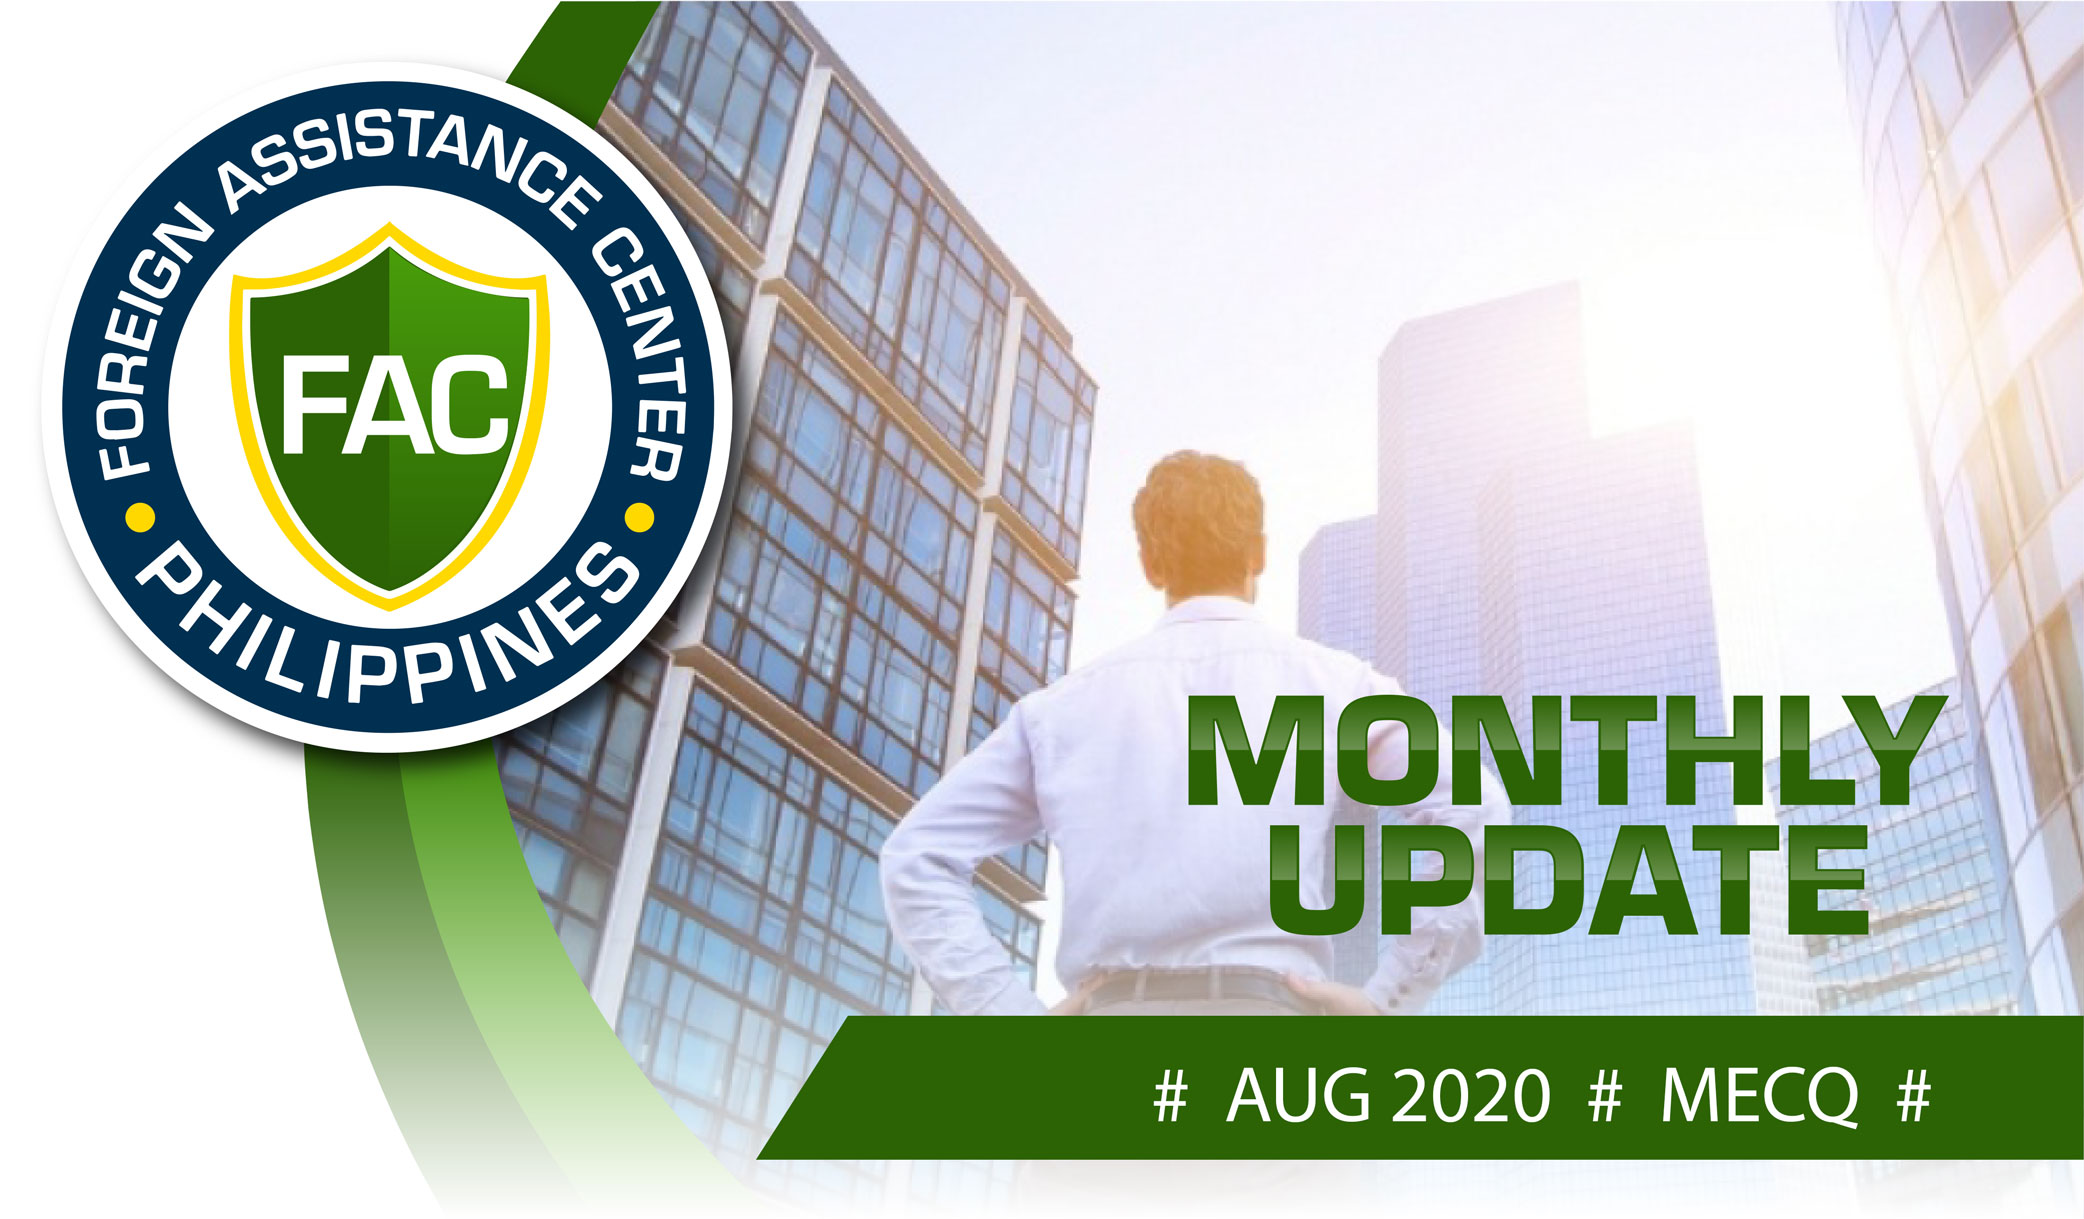 FAC-Philippines---Monthly-Update-AUG